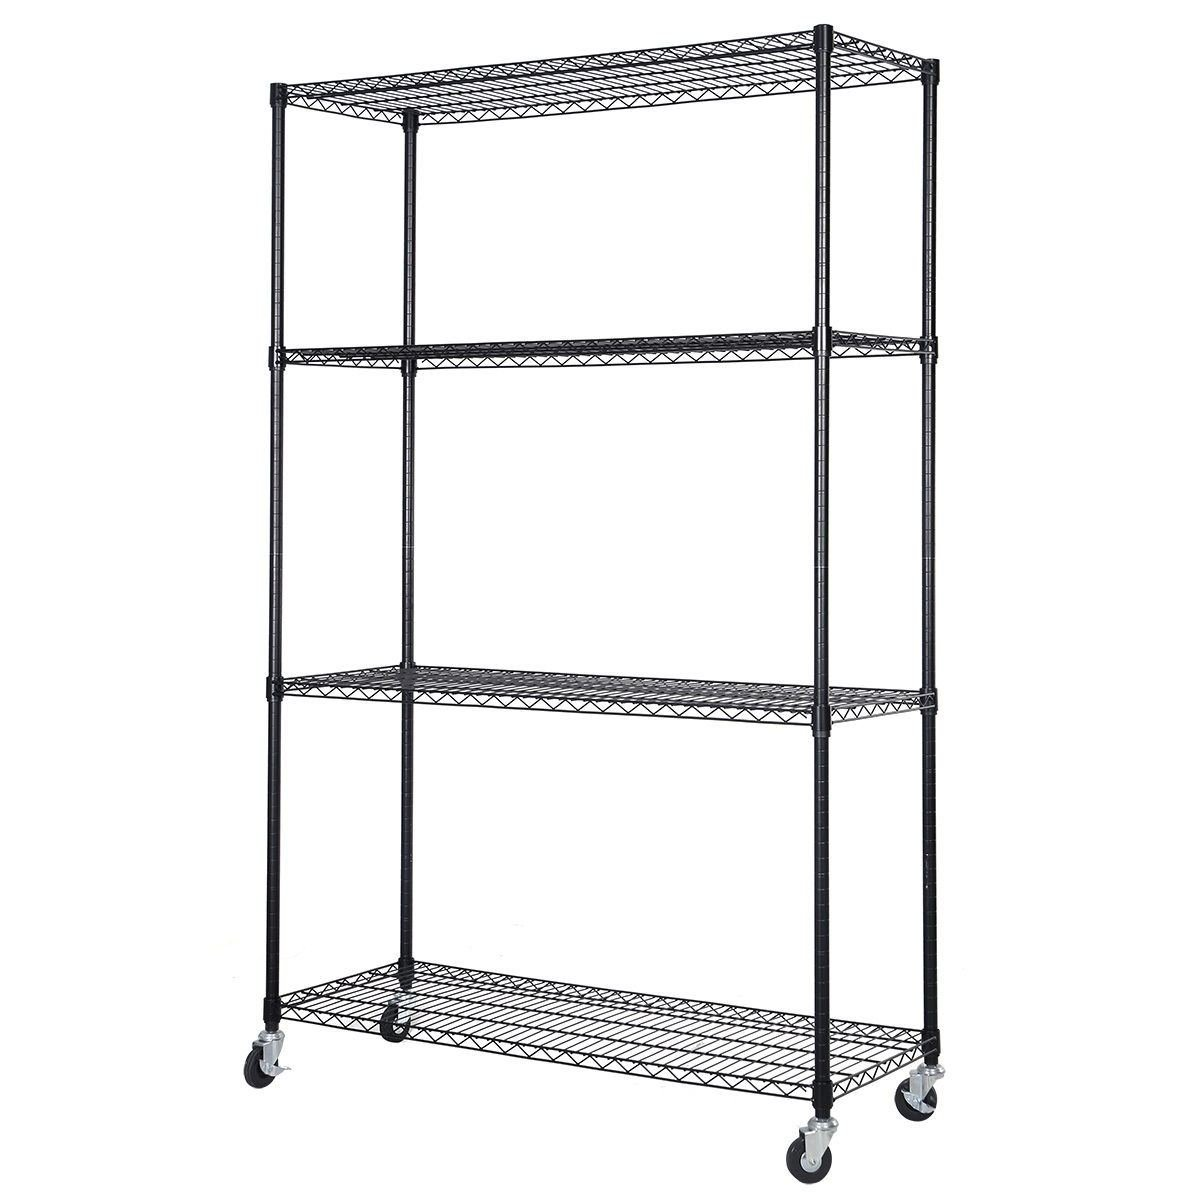 MasterPanel -48'' x 18'' x 72'' Adjustable 4 Tier Shelf Steel Wire Metal Shelving Rack Storage #TP3320 by MasterPanel